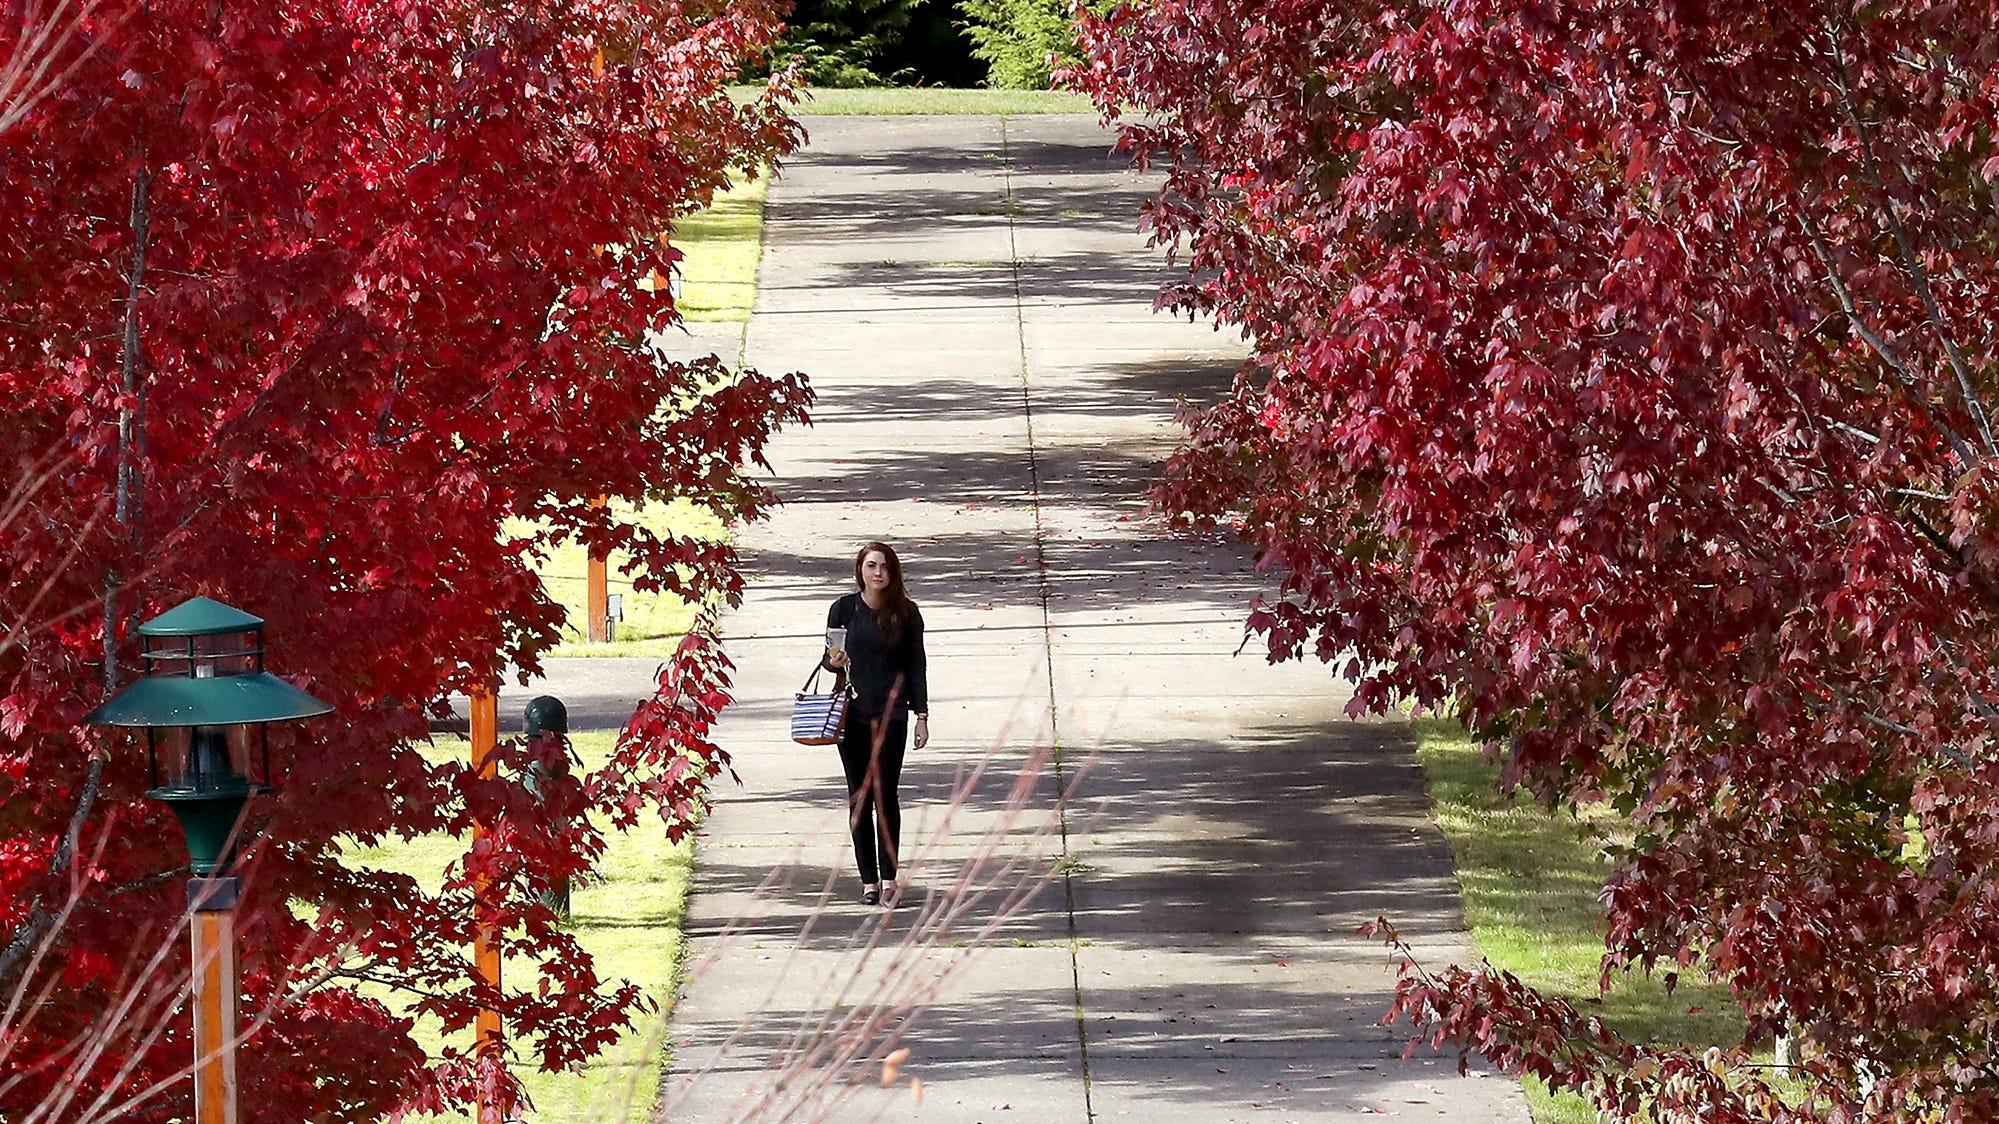 Student Sara Simmons heads down the tree-lined path at the Olympic College campus in Poulsbo on Tuesday, October 9, 2018. Simmons is the Student Government of Olympic College Vice President of Poulsbo.